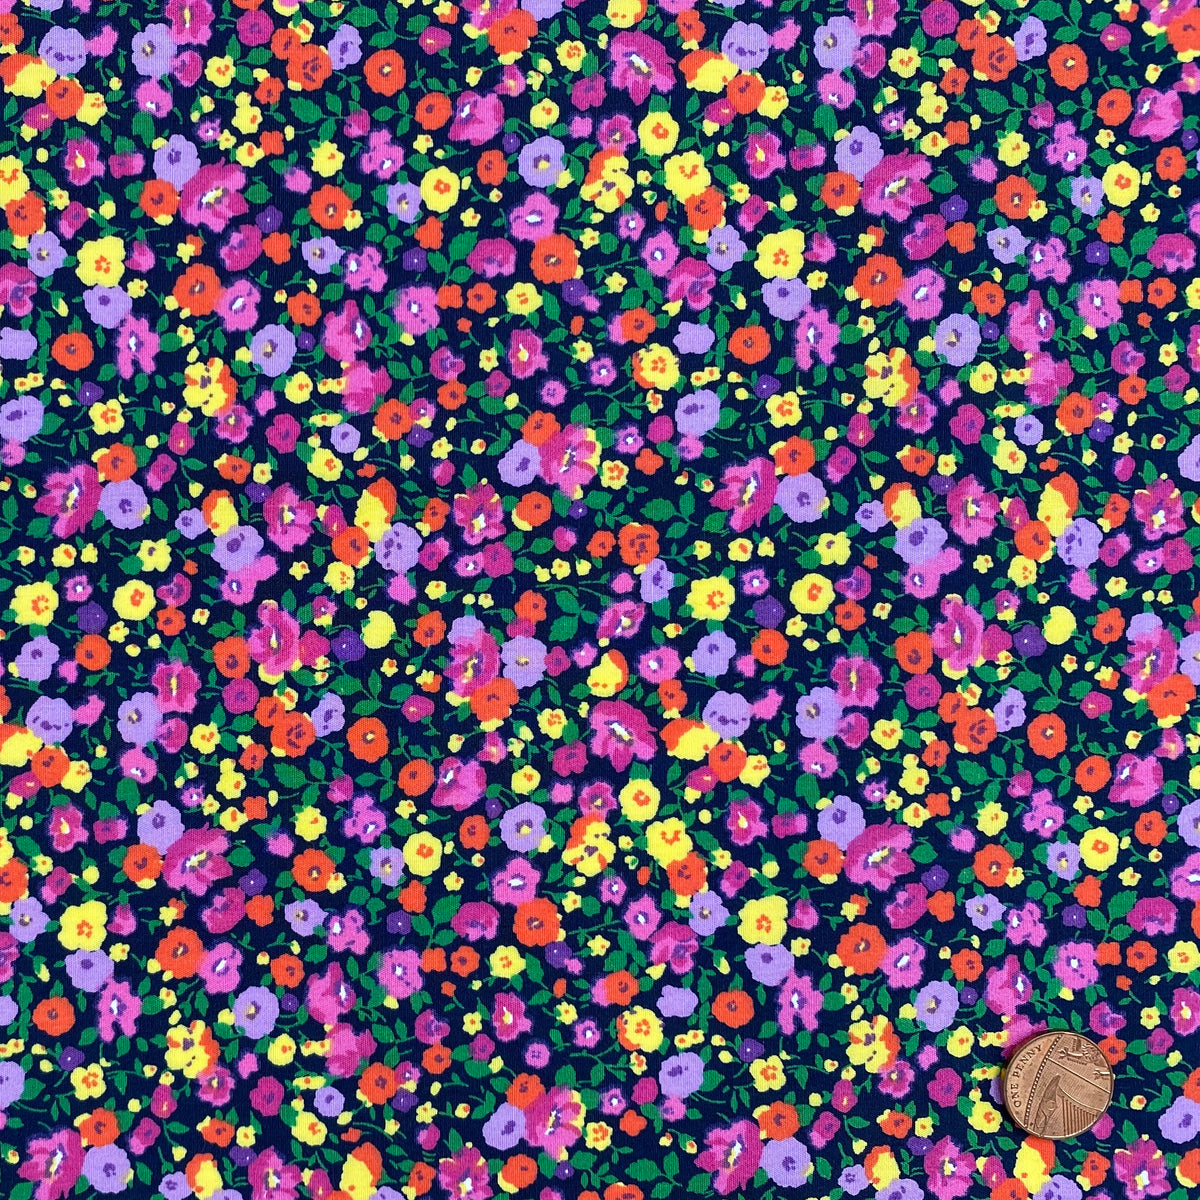 Path of Flowers Navy blue 100% cotton poplin fabric, sold per 1/2 metre, 112cm wide